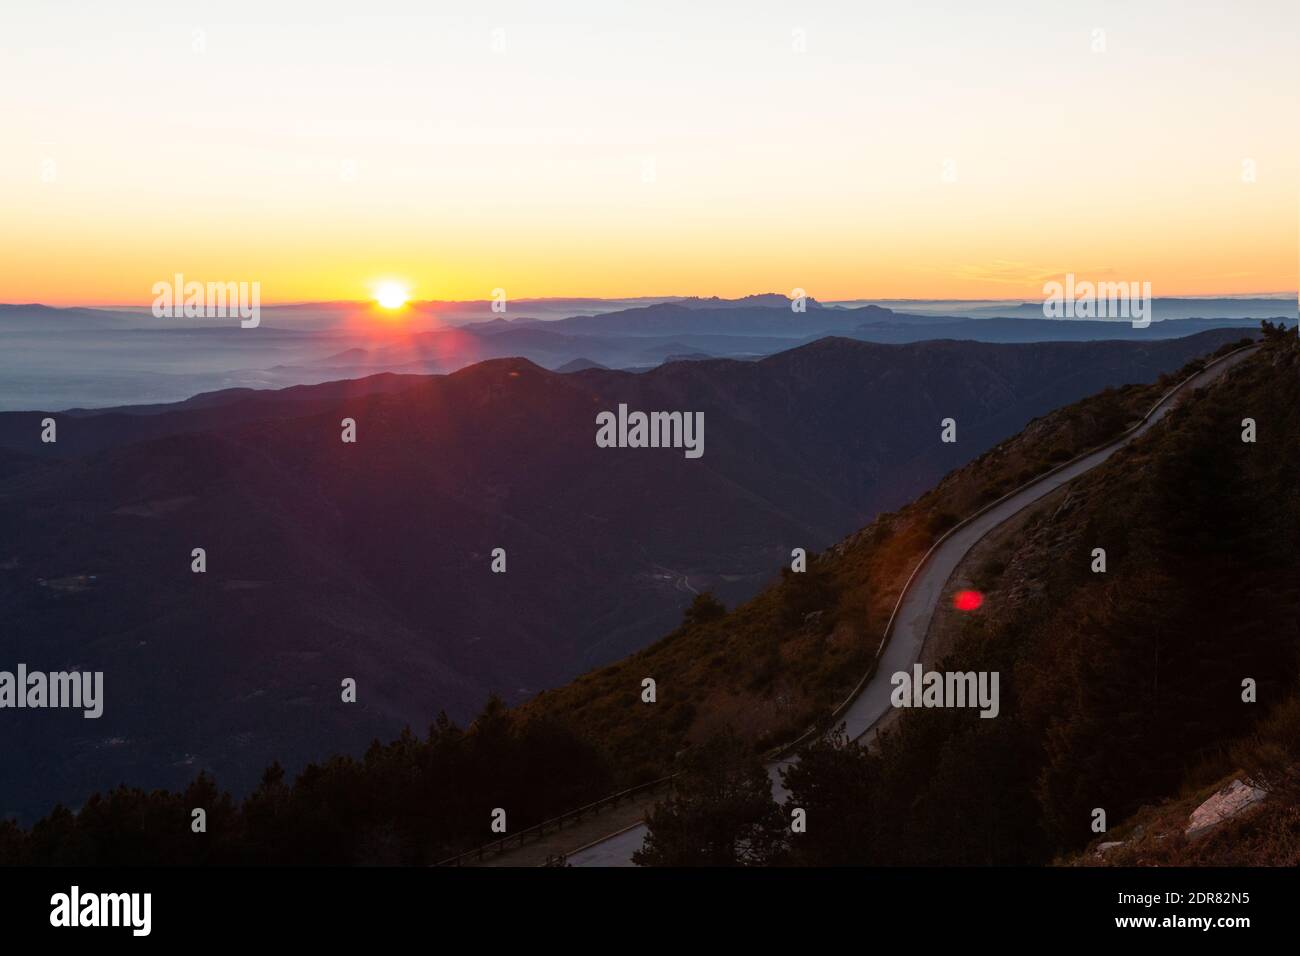 Mountain road with spectacular views of different mountain ranges with sunset or sunrise. Montseny, Montserrat, Turo de l'Home, Barcelona, Catalonia, Stock Photo